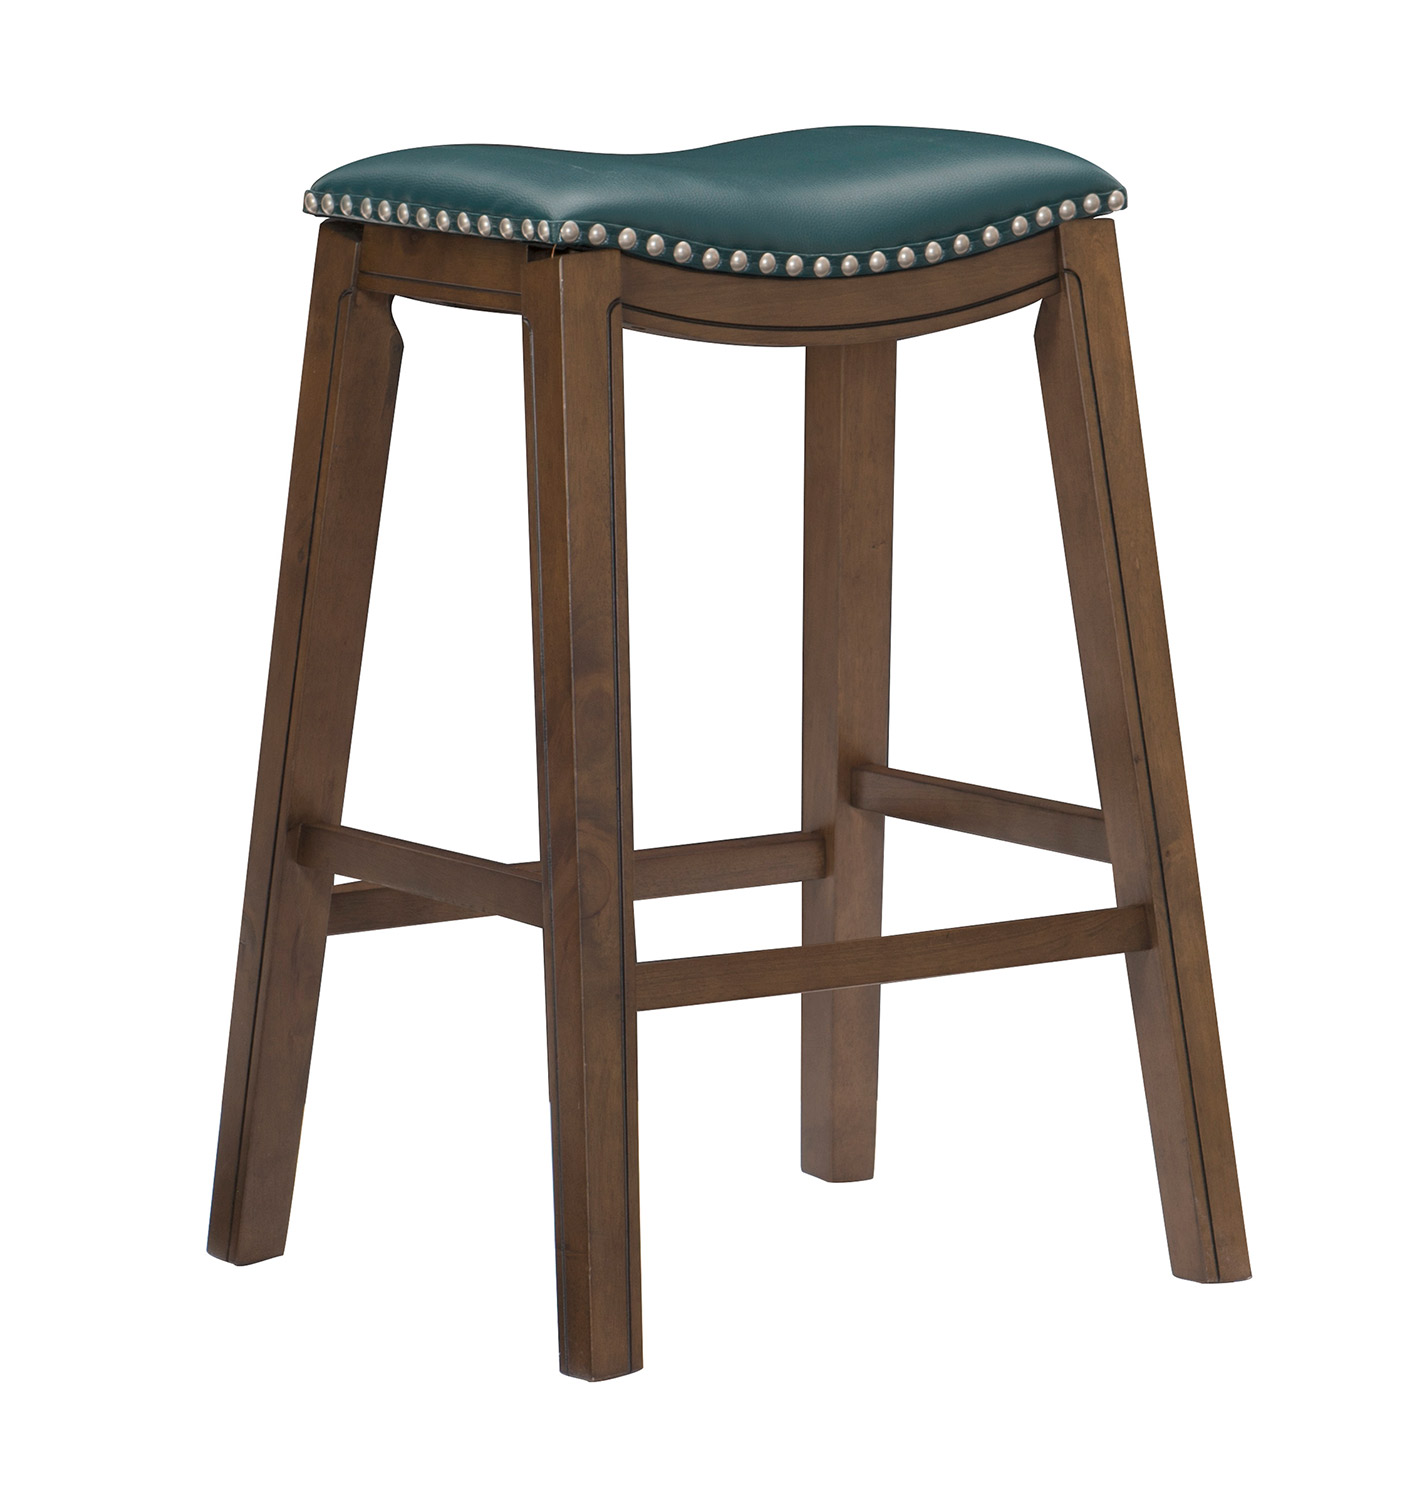 Homelegance 29 SH Stool - Green